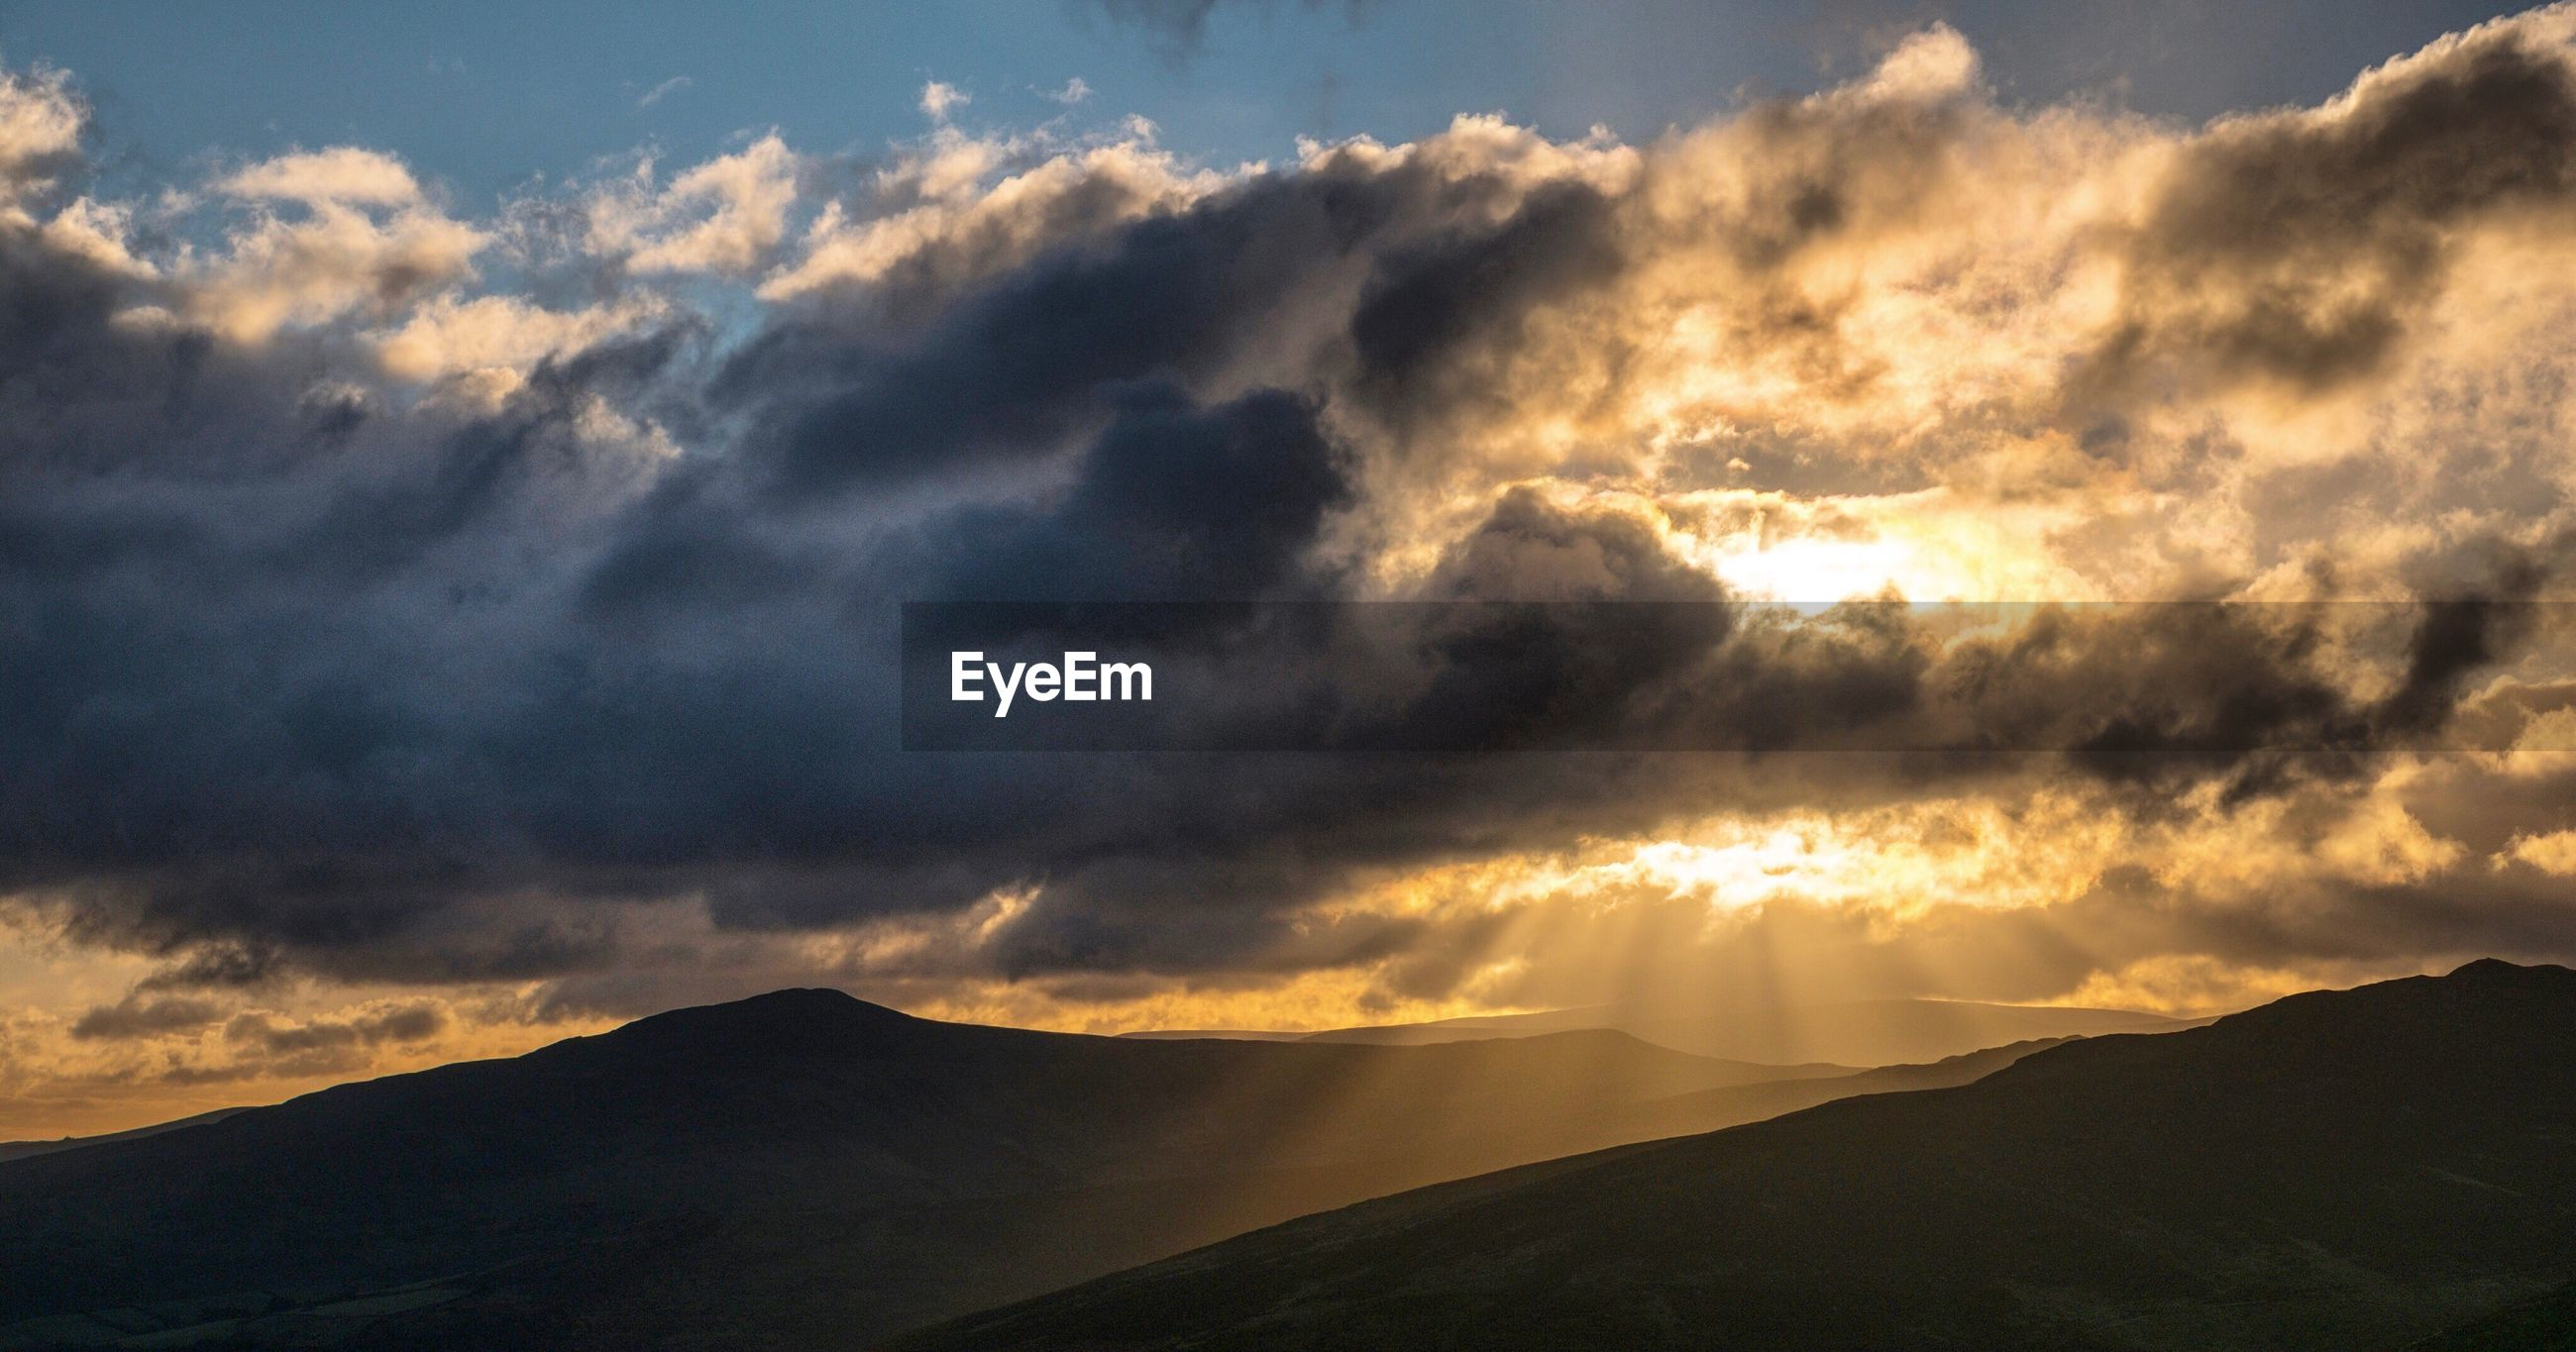 DRAMATIC SKY OVER MOUNTAINS DURING SUNSET